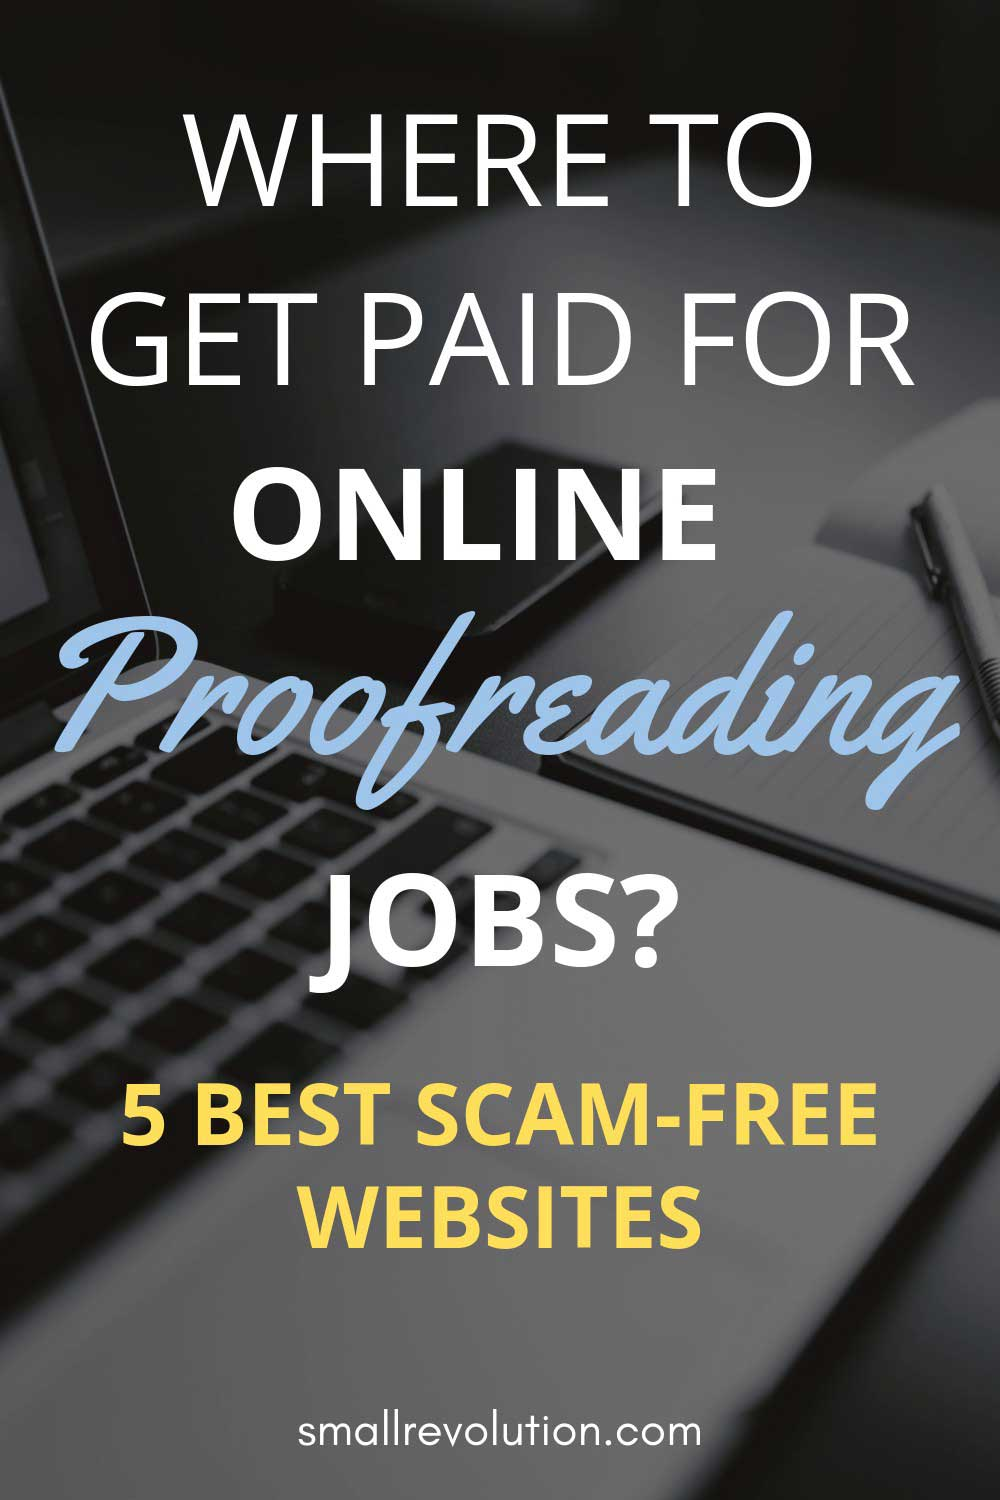 Where to get paid for online proofreading jobs